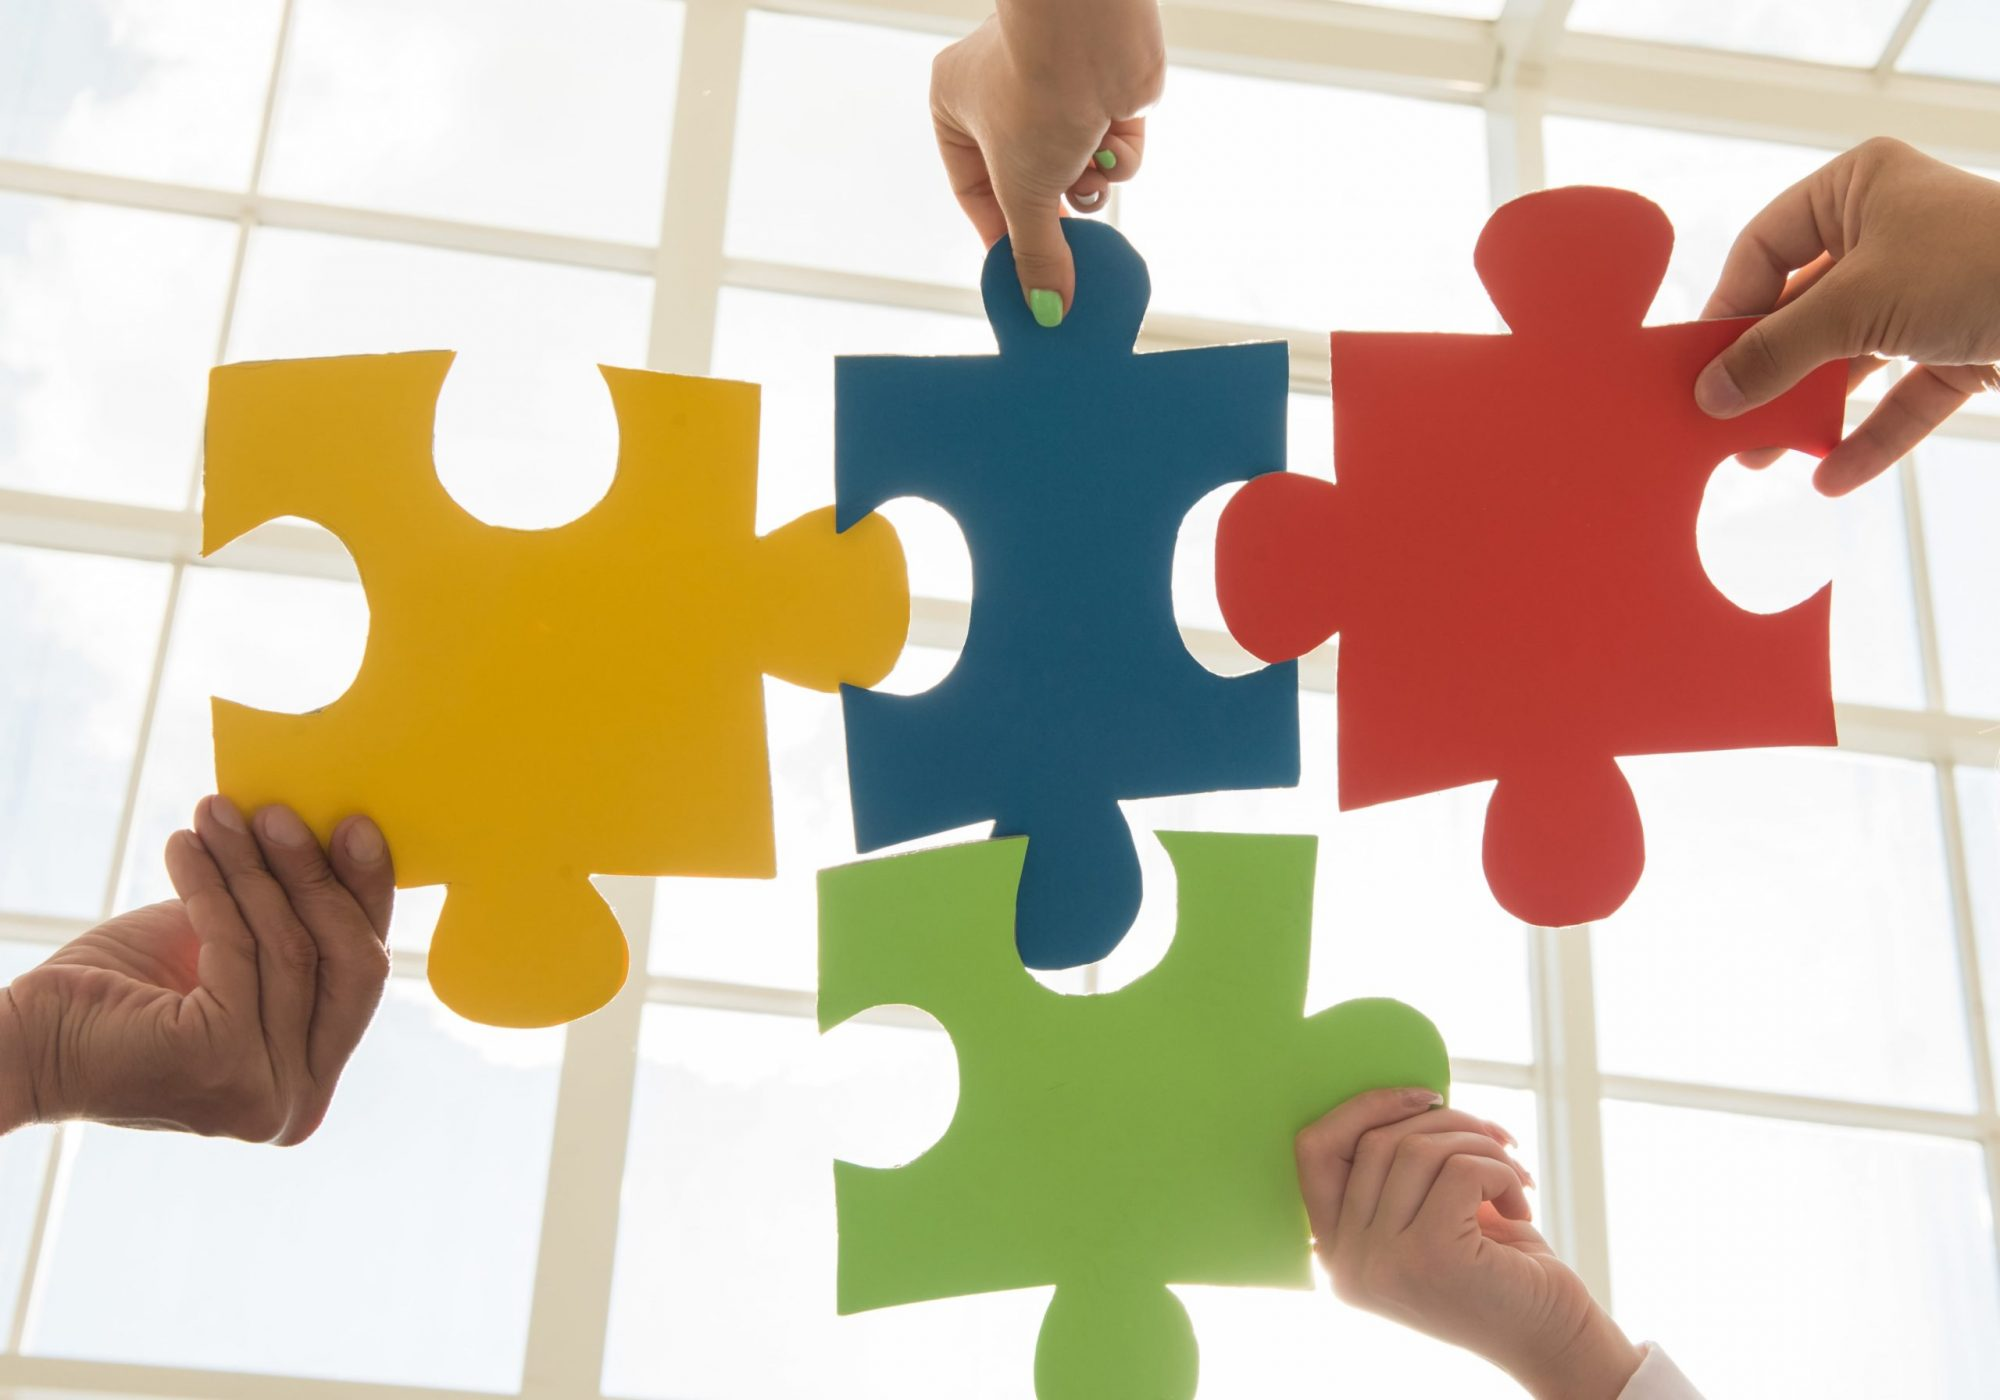 puzzle-and-represent-team-support-and-help-concept-min